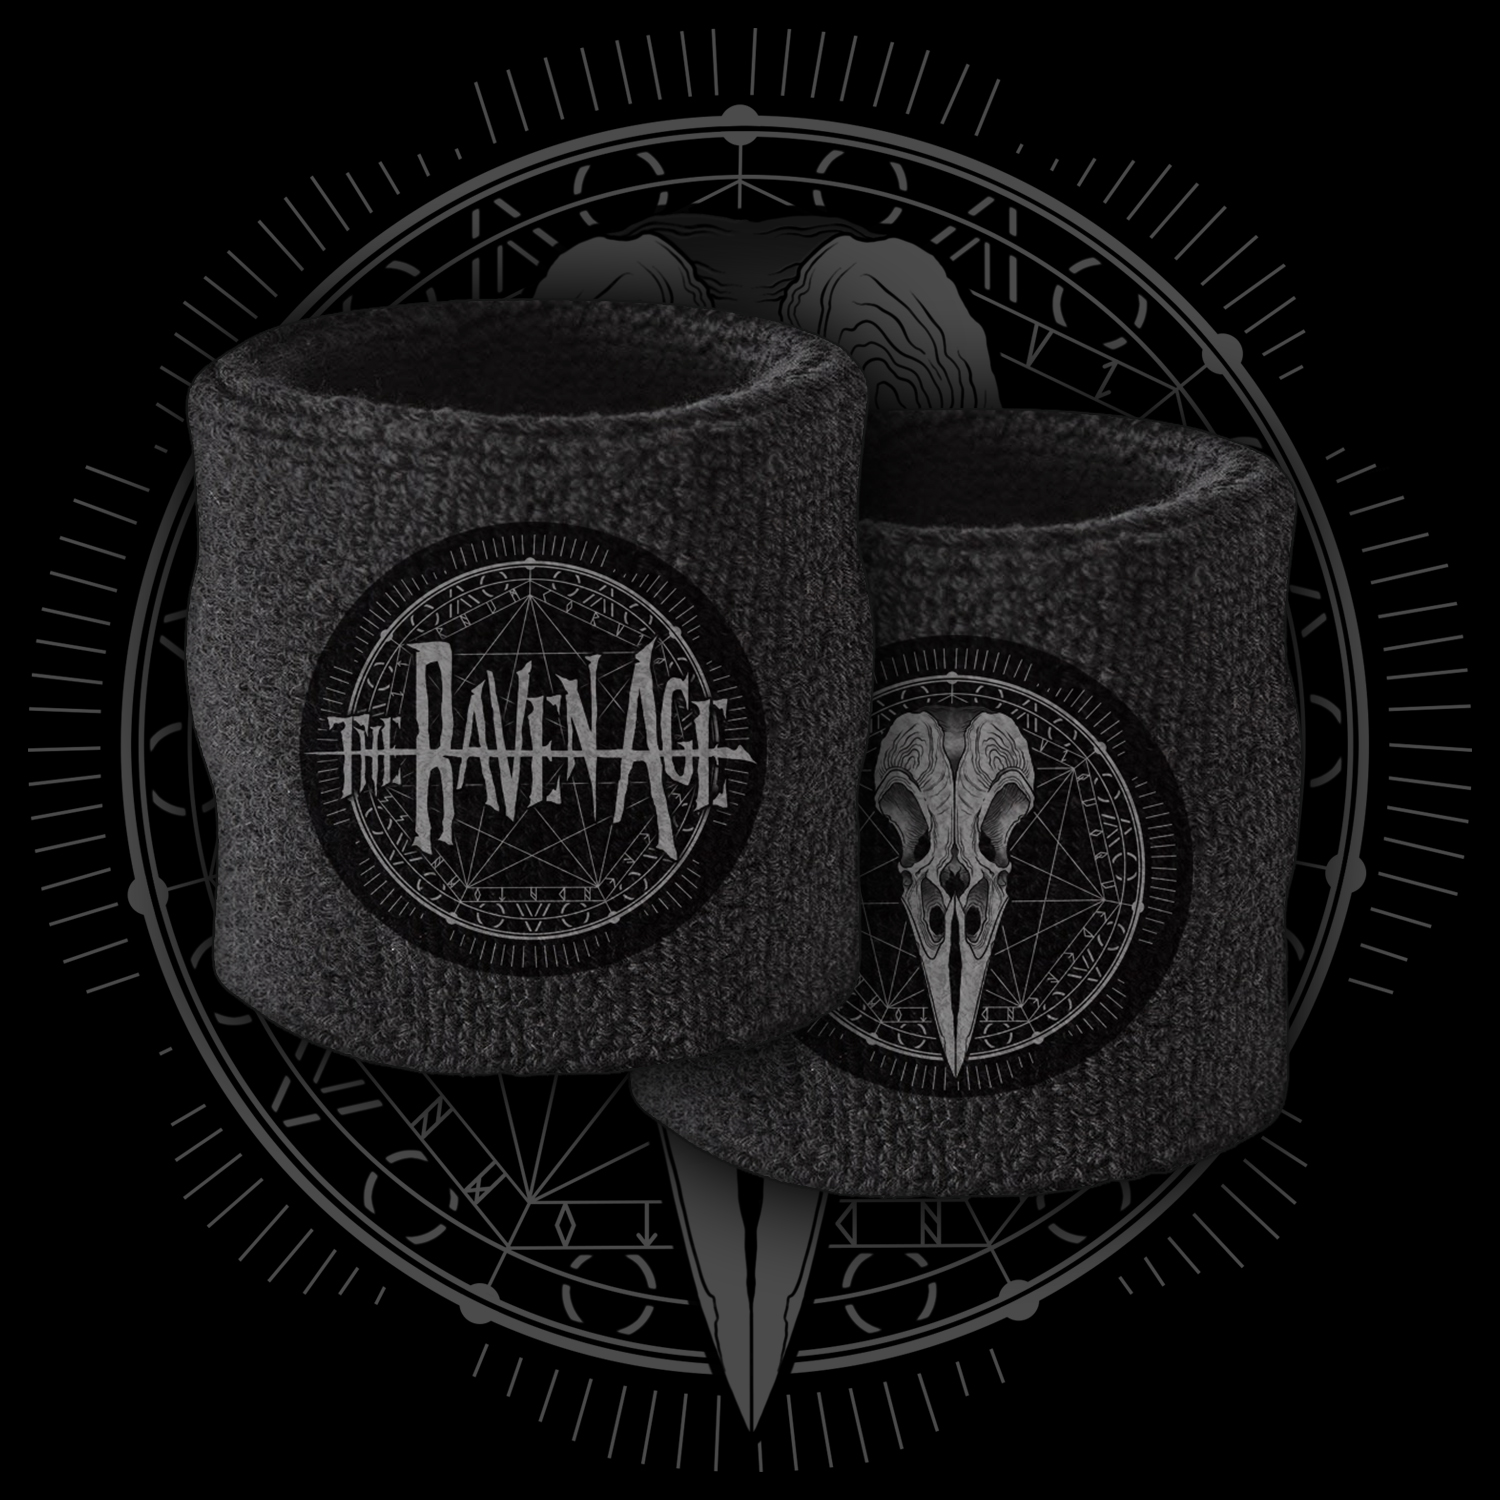 The Raven Age - Wristbands - The Raven Age